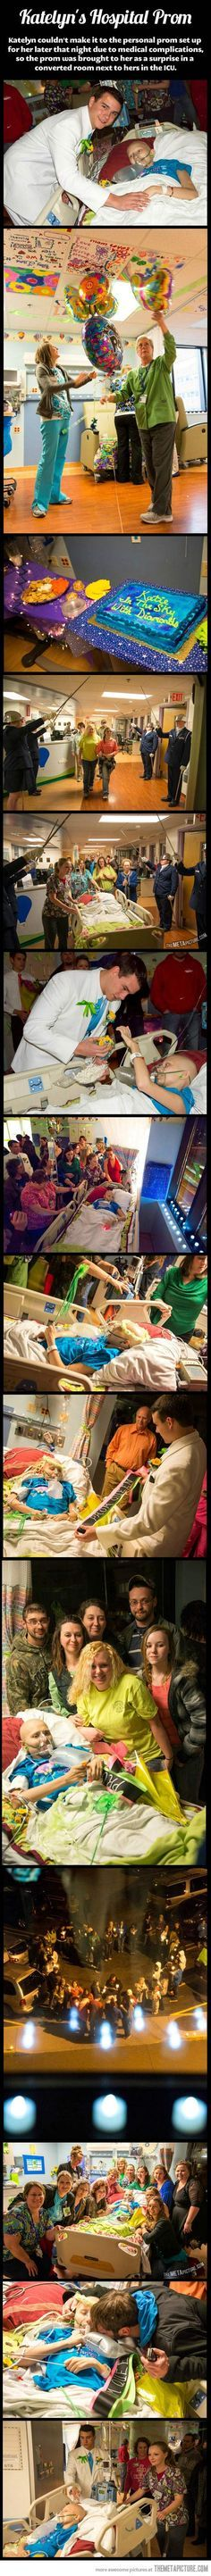 She couldn't make it to the prom, so the prom was brought to her…Faith in humanity restored.